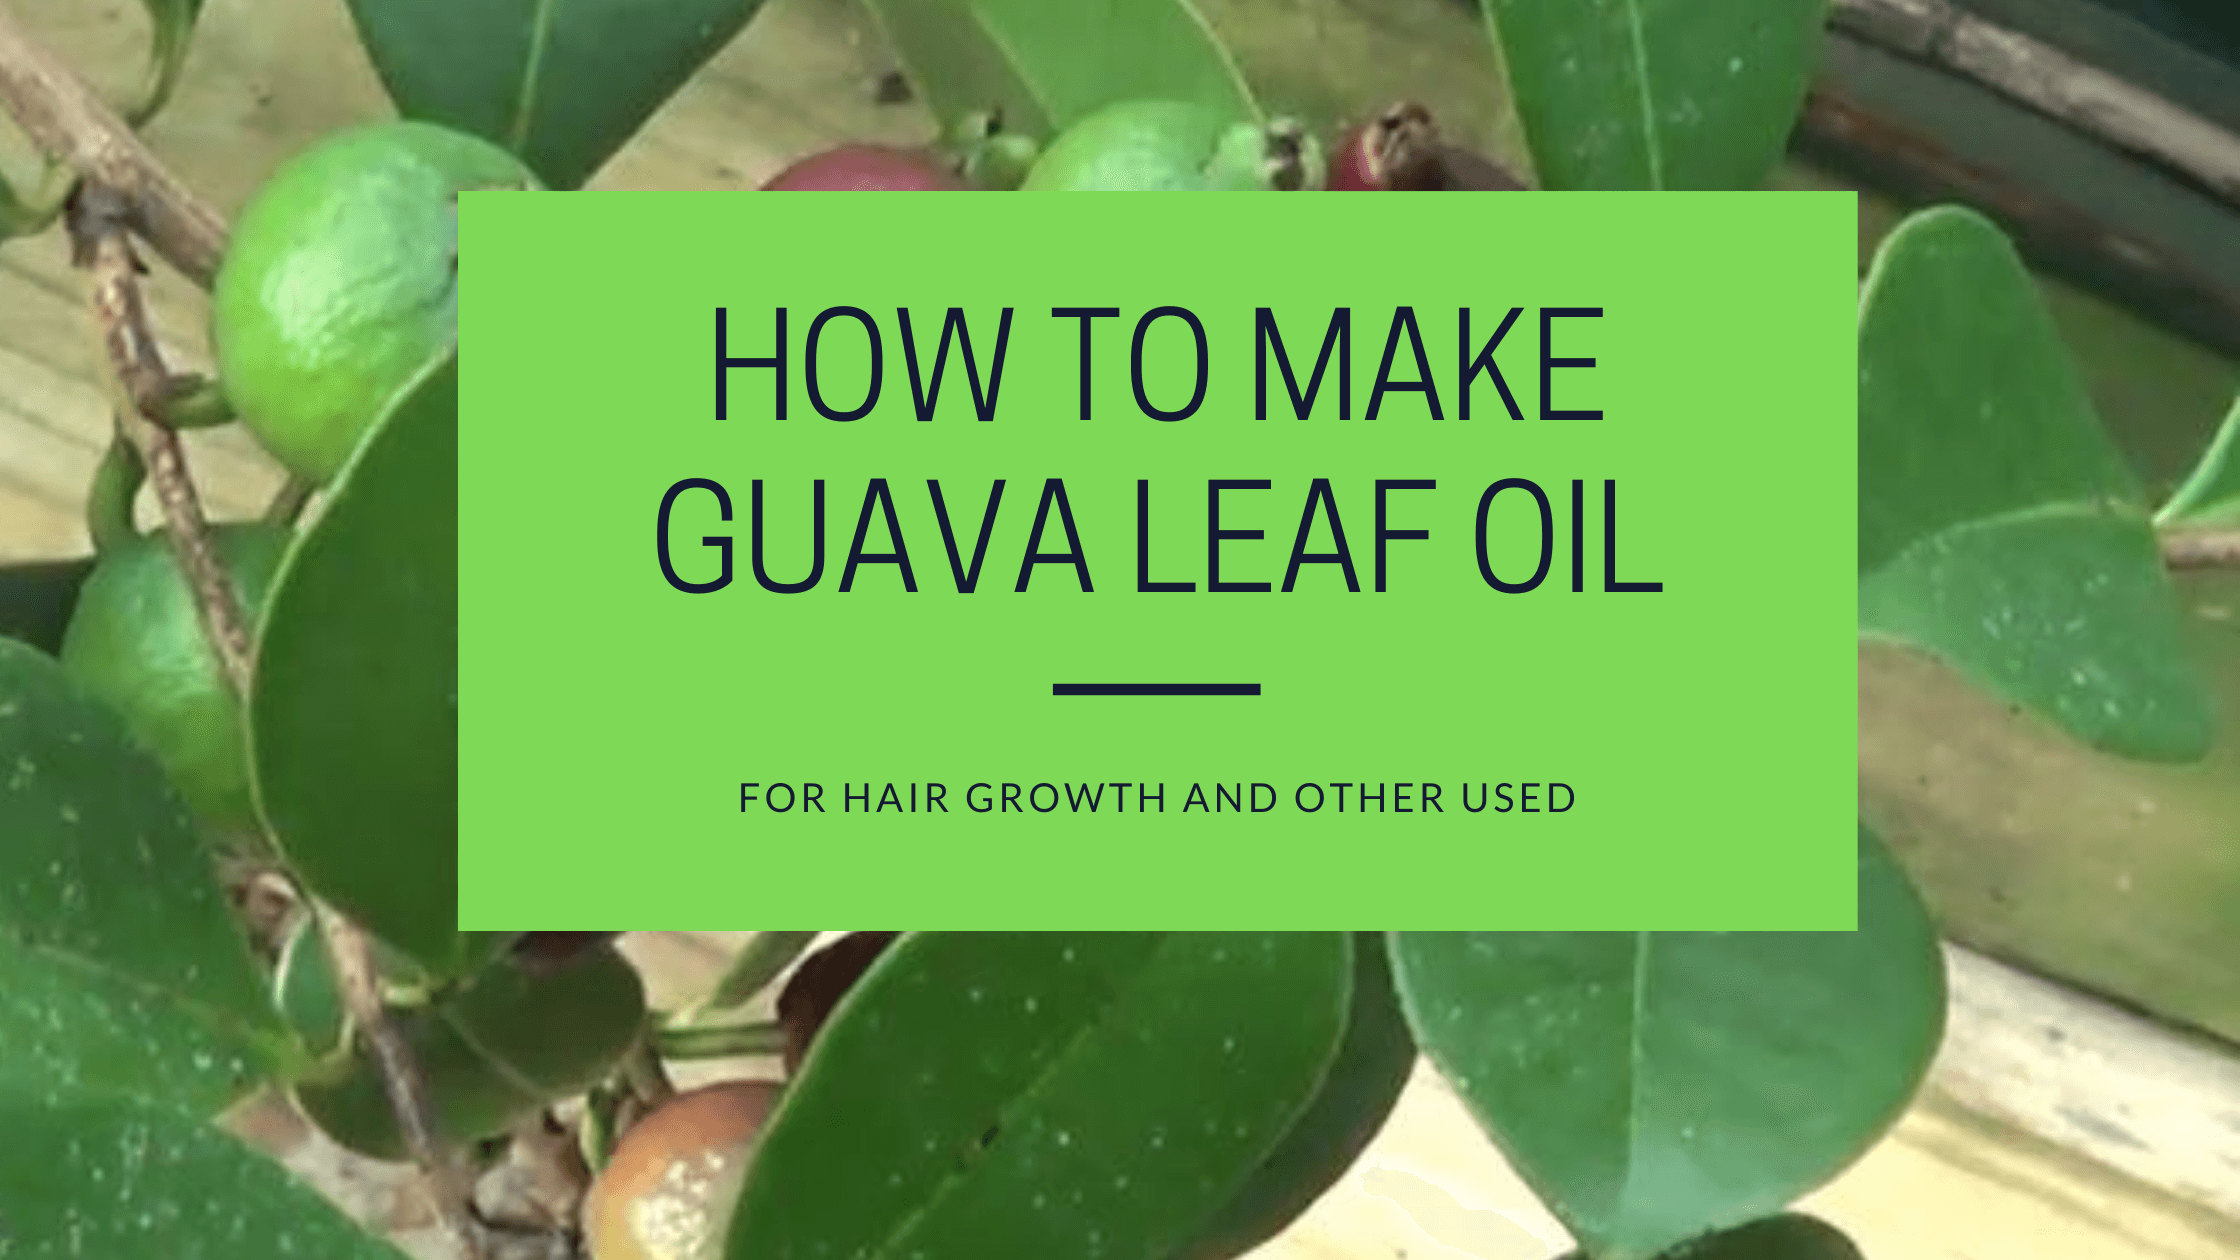 how to make guava leaf oil